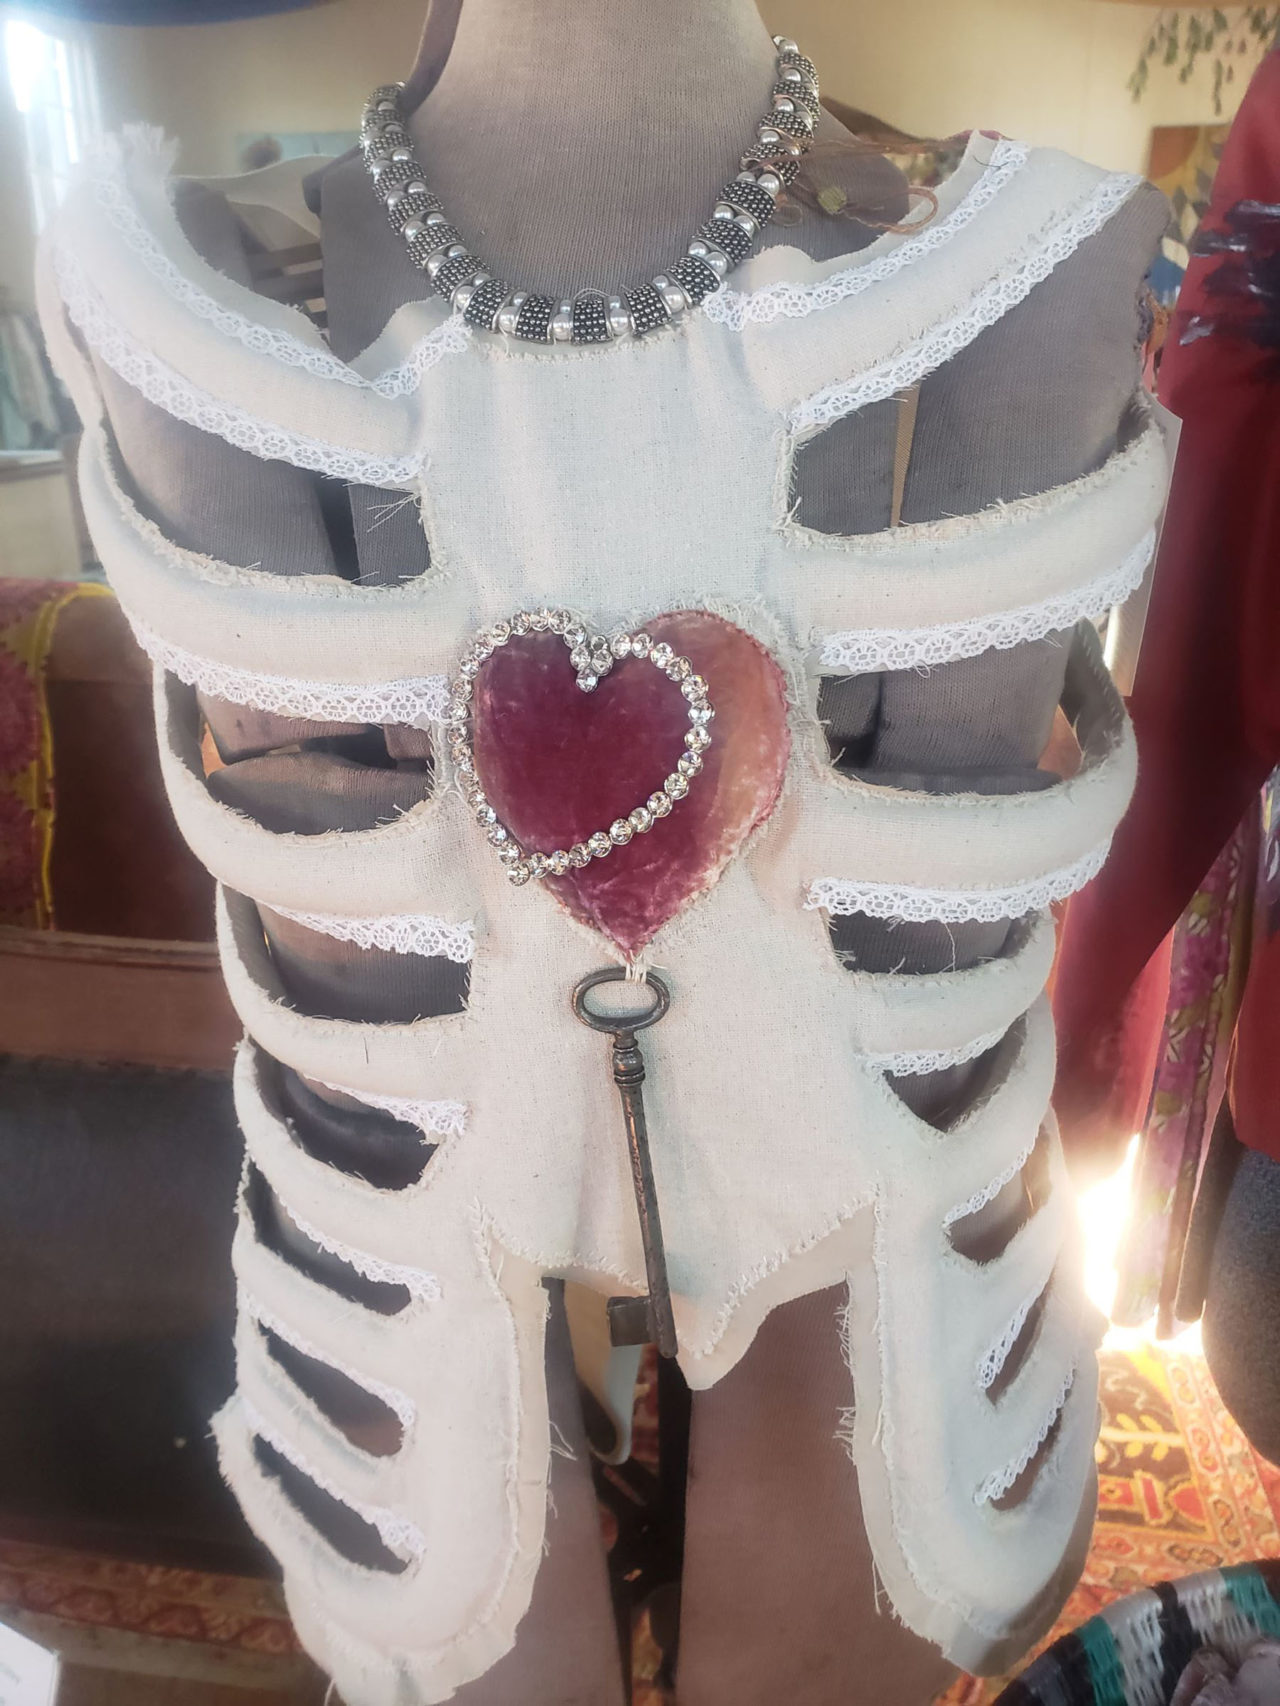 Sugarcoat-Couture-Key-to-my-Heart-Corset